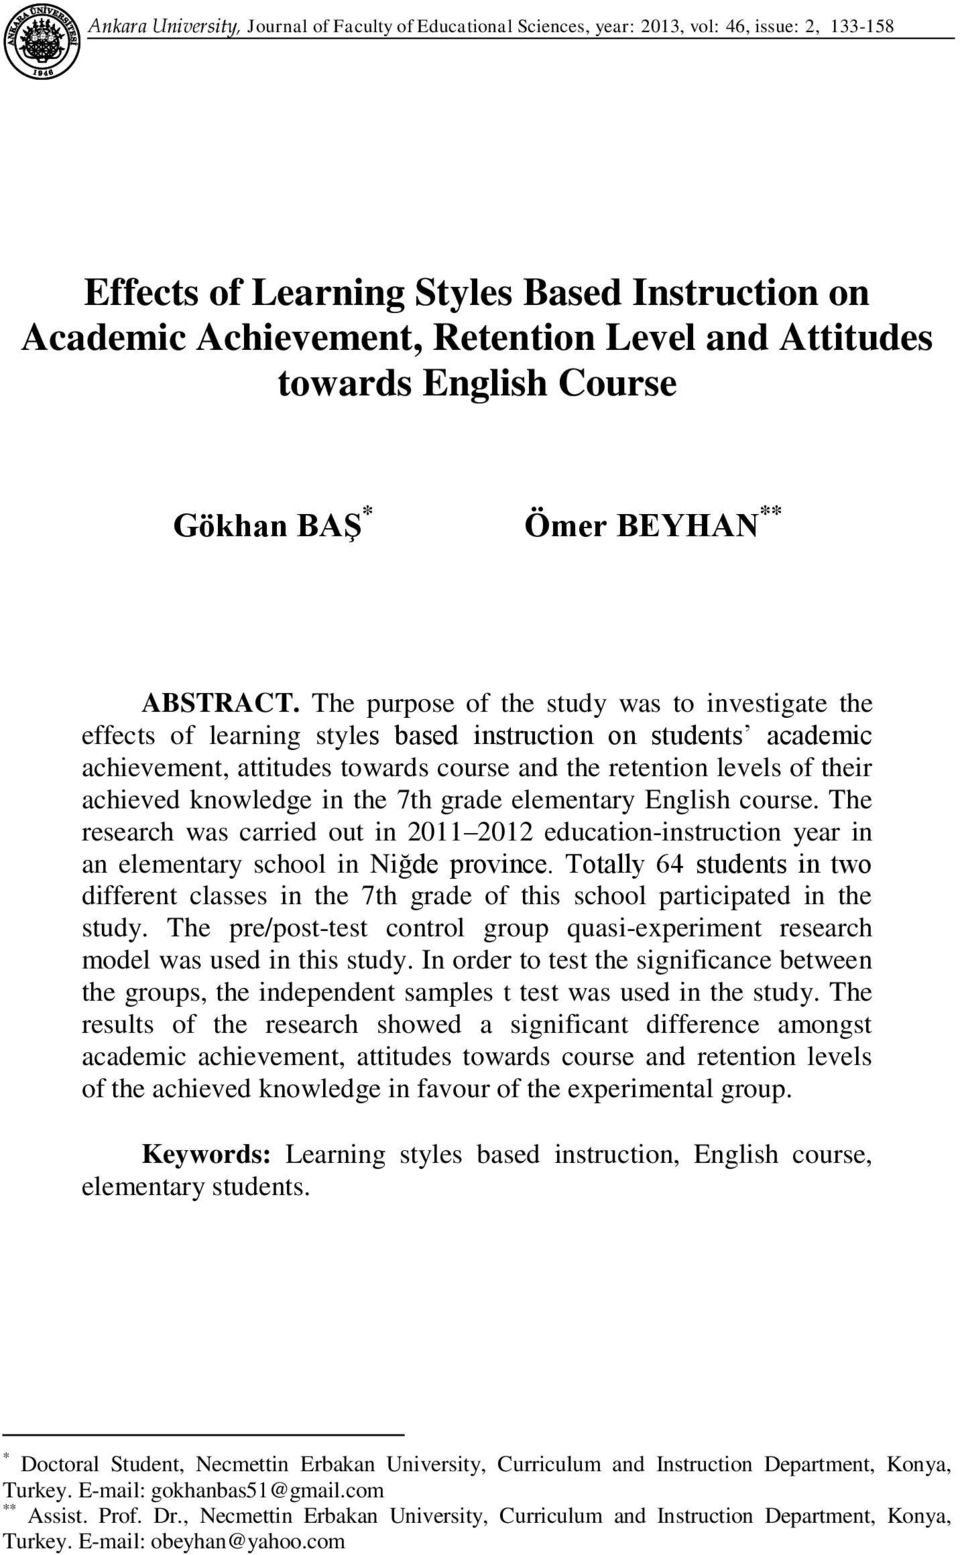 The purpose of the study was to investigate the effects of learning styles based instruction on students academic achievement, attitudes towards course and the retention levels of their achieved